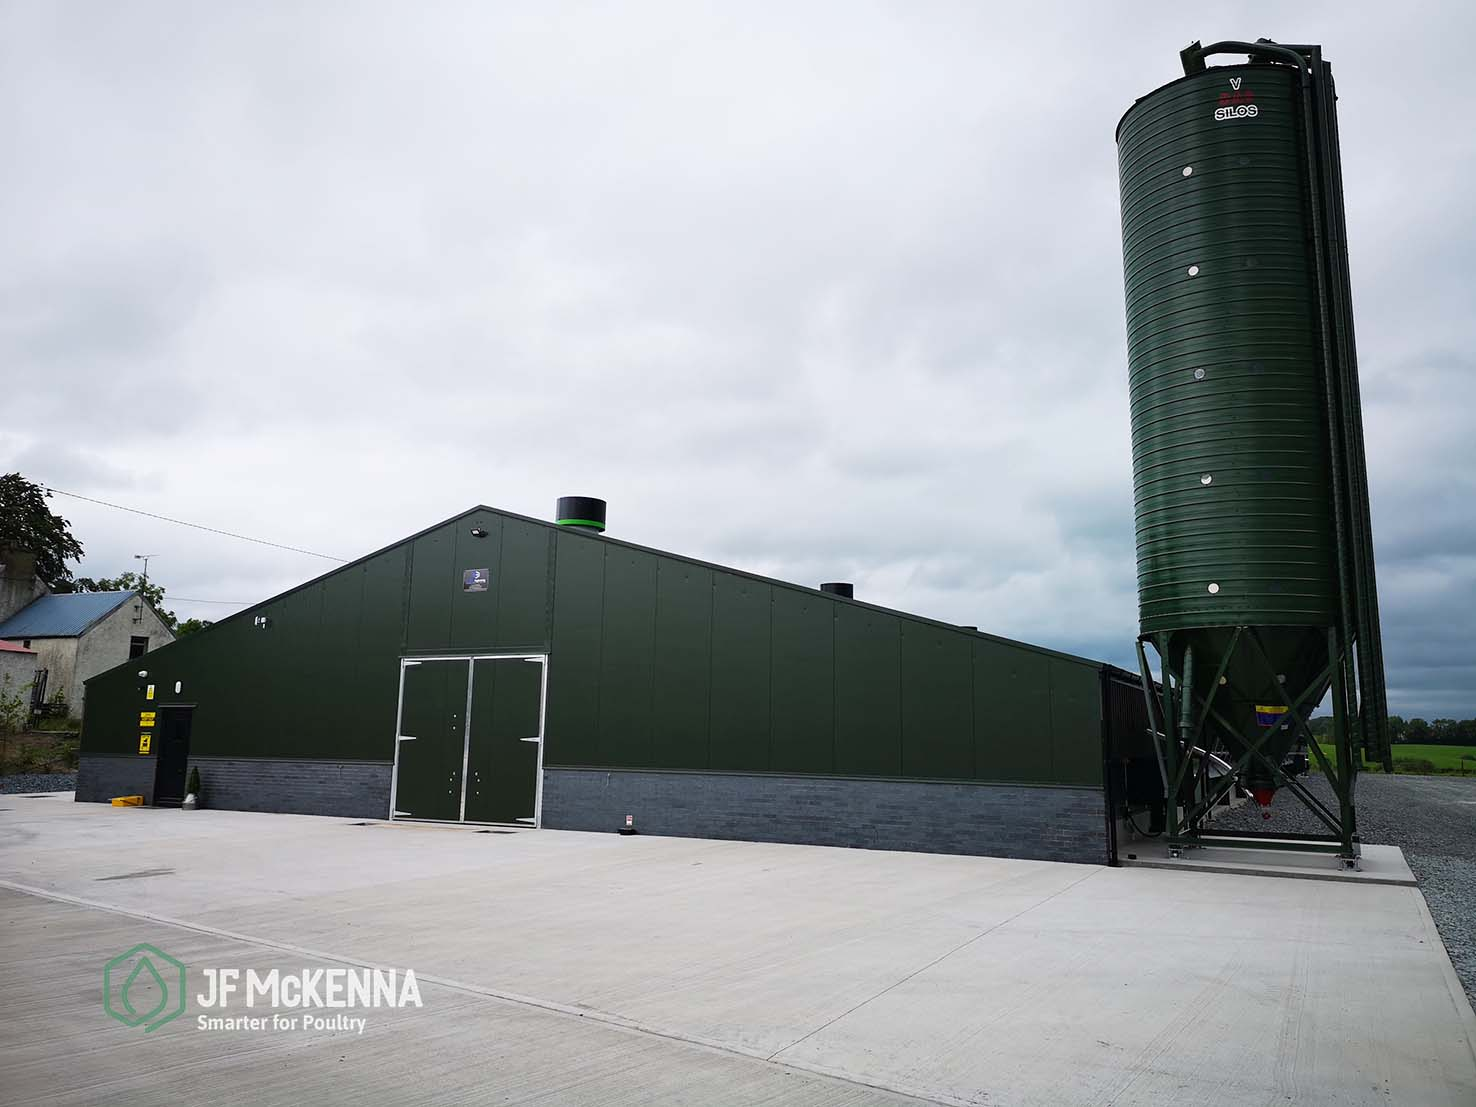 BROILER PROJECT    Republic of Ireland   In 2019, JF McKenna fitted out this impressively finished 40,000 unit poultry house in Monaghan, ROI